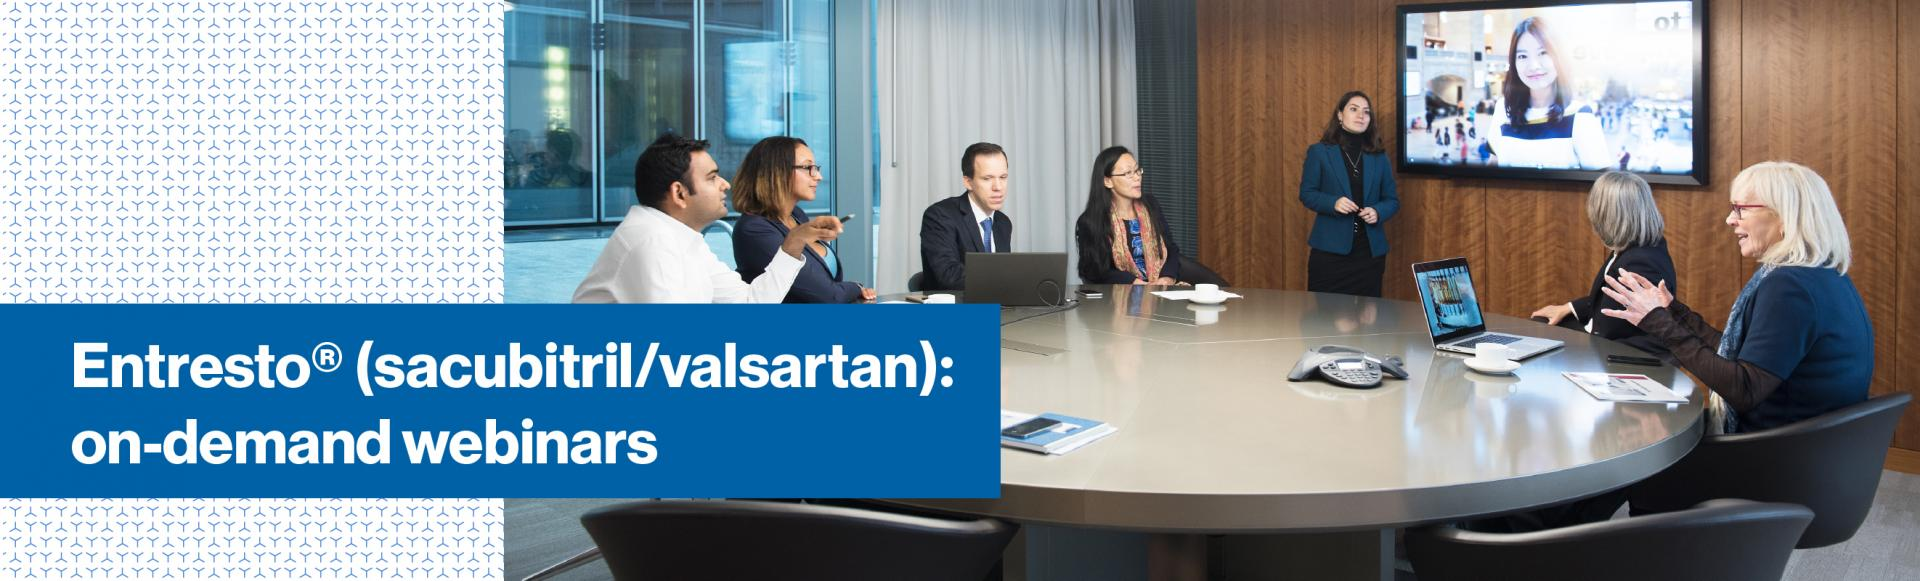 Top banner. Image of business people gathered round a boardroom table and TV screen. Text saying: Entresto® (sacubitril/valsartan): on-demand webinars